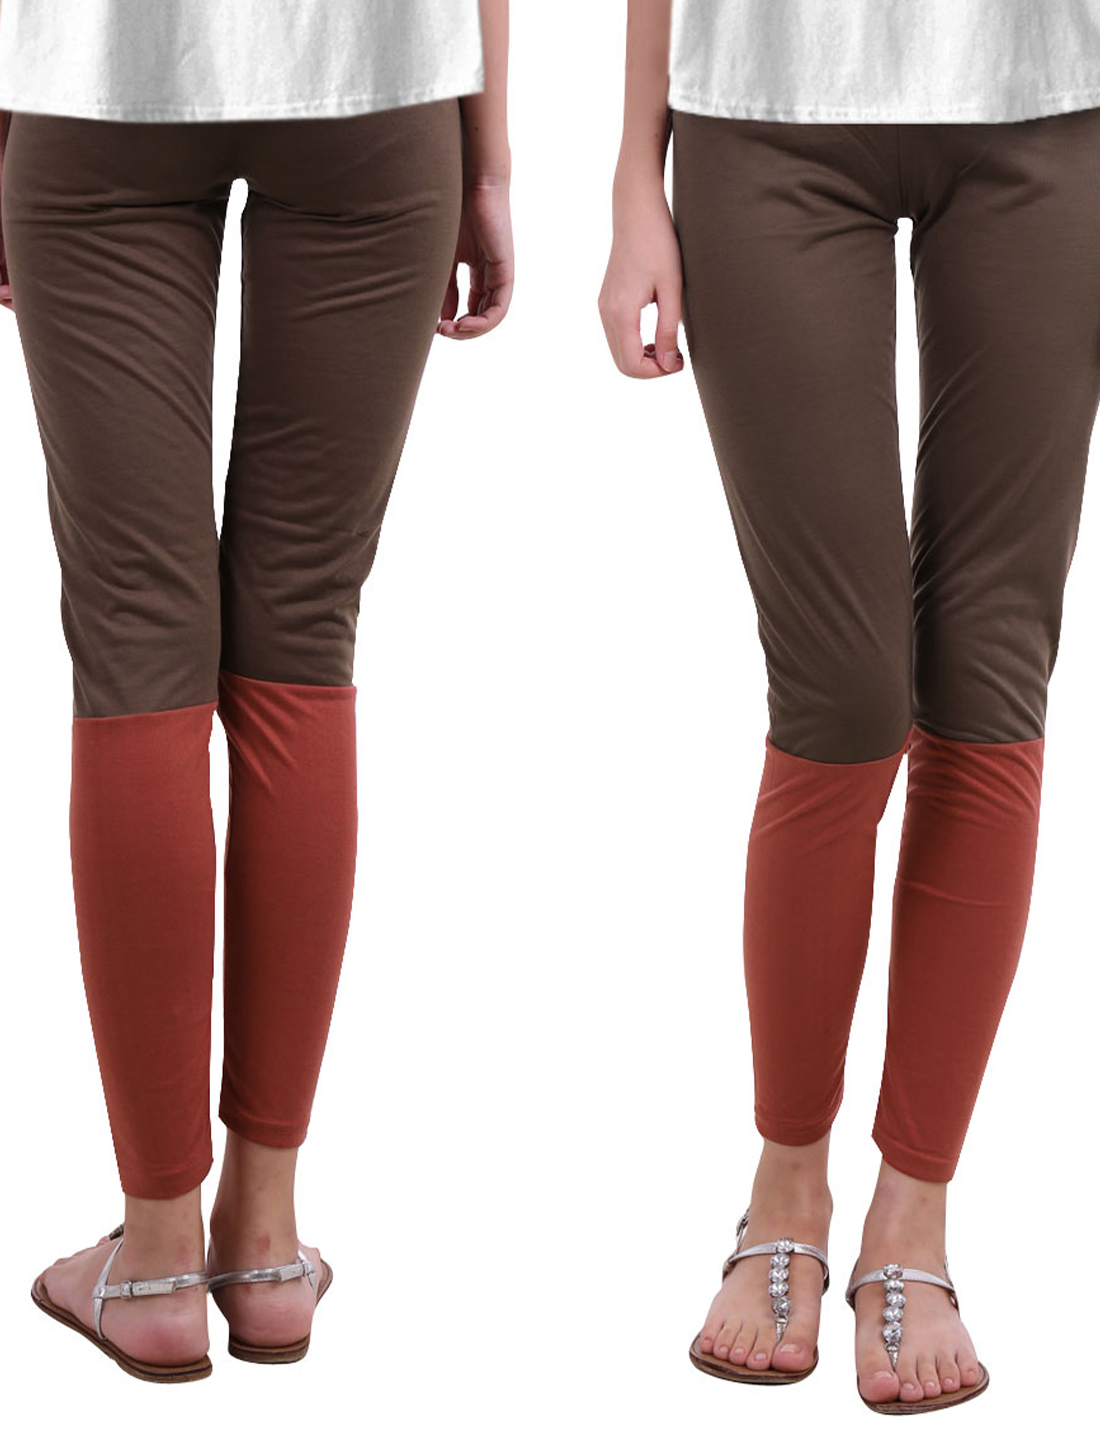 Woman Form-fitting Low Waist Splice Full Length Red Brown XS Leggings Pants